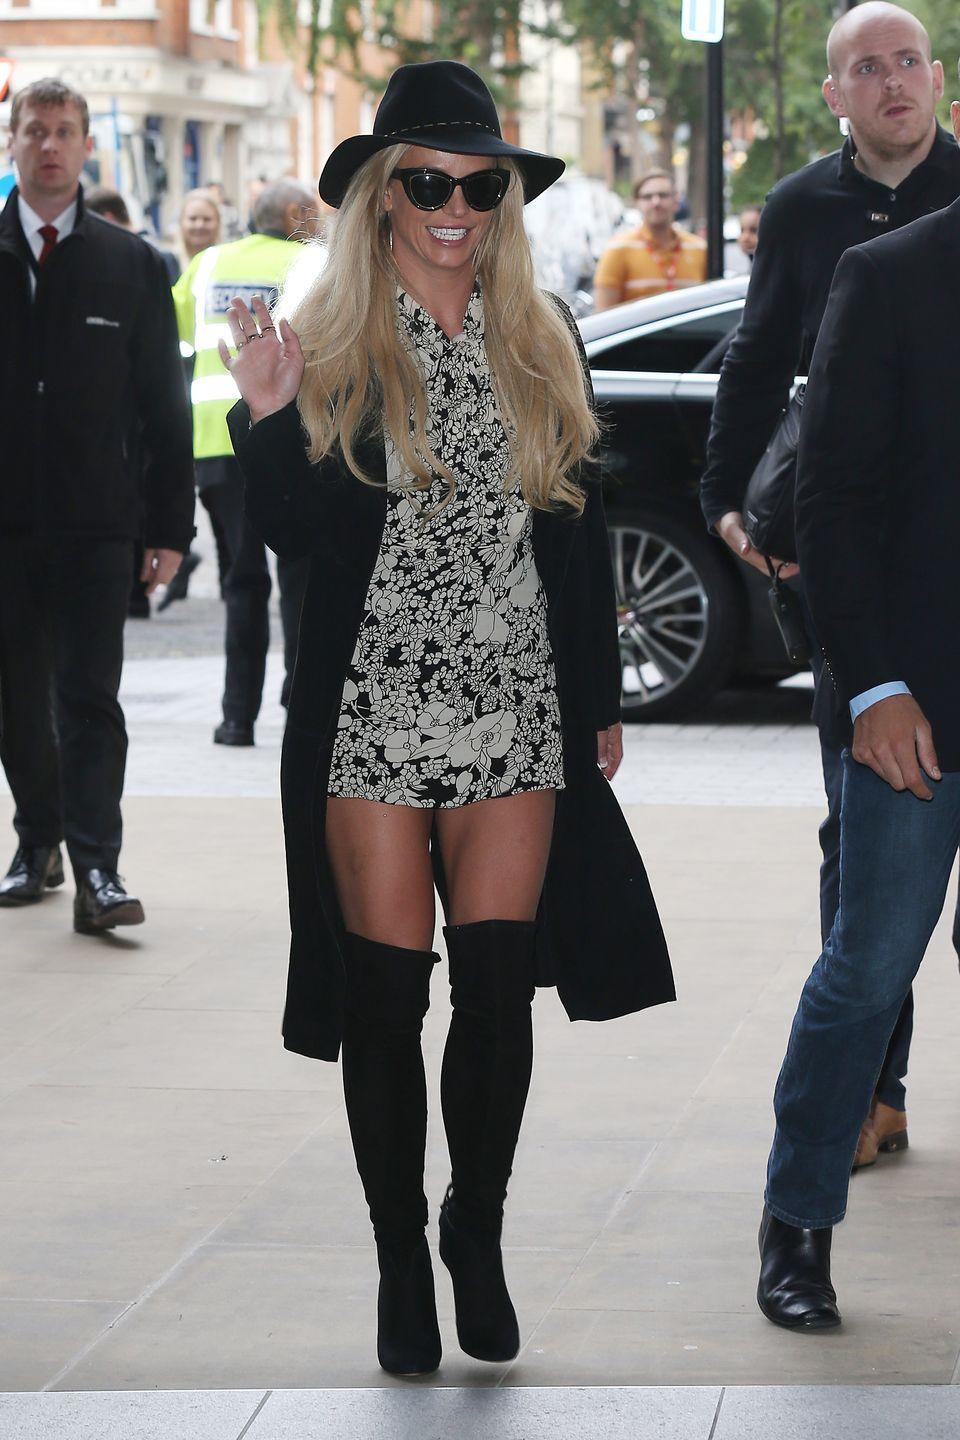 <p>I'll give it to her, Brit sure knows how to slay the accessories game. Matching her hat, sunglasses, jacket, and over-the-knee boots, she's bringing some chic AF vibes to her wardrobe. </p>